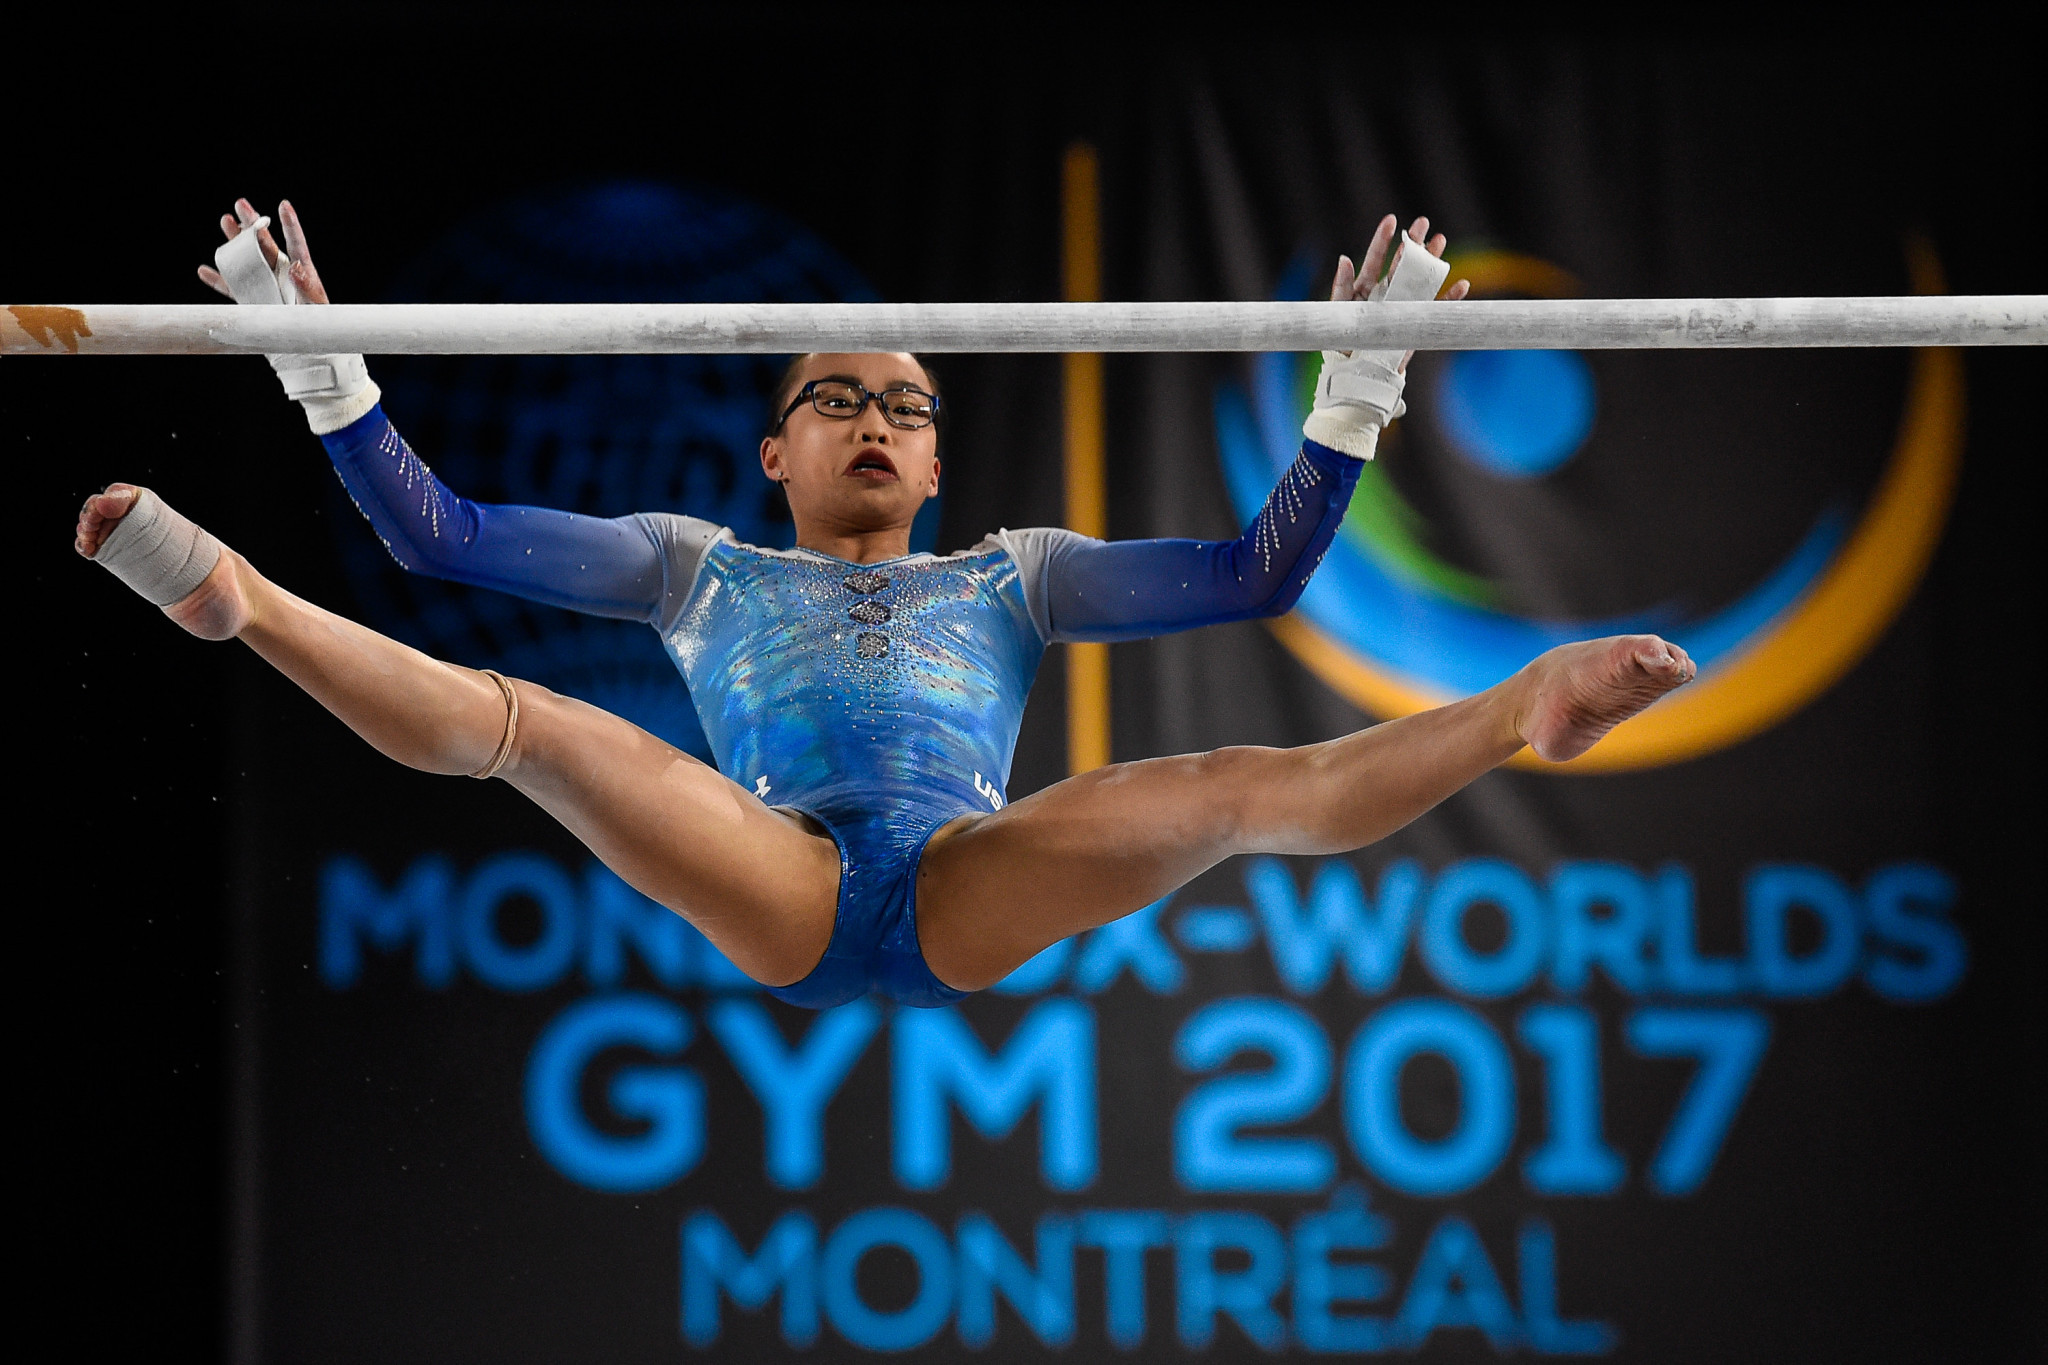 Hurd maintains American stranglehold on women's all-around title with surprise triumph at Artistic Gymnastics World Championships